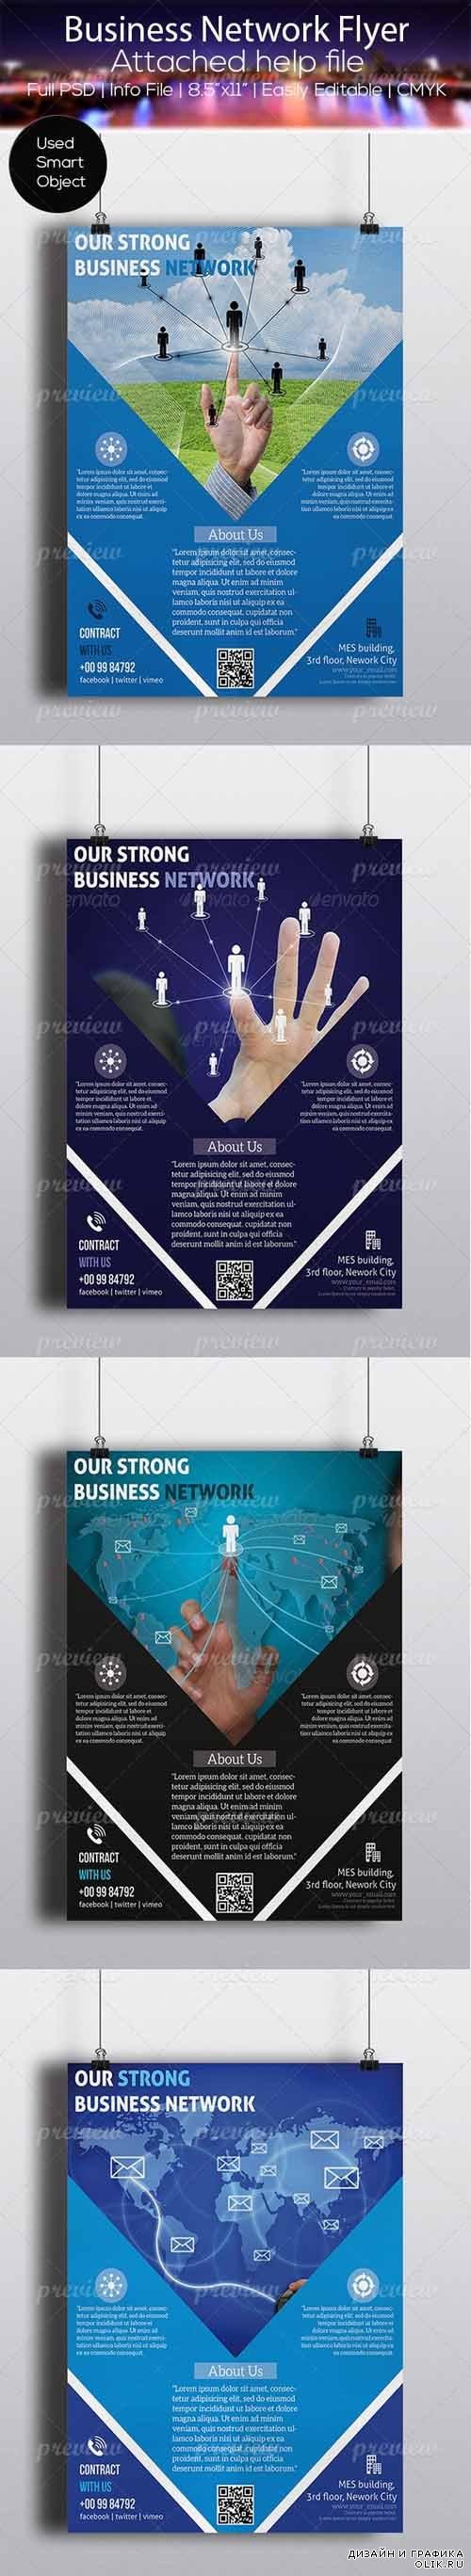 PSD - Business Network Flyer